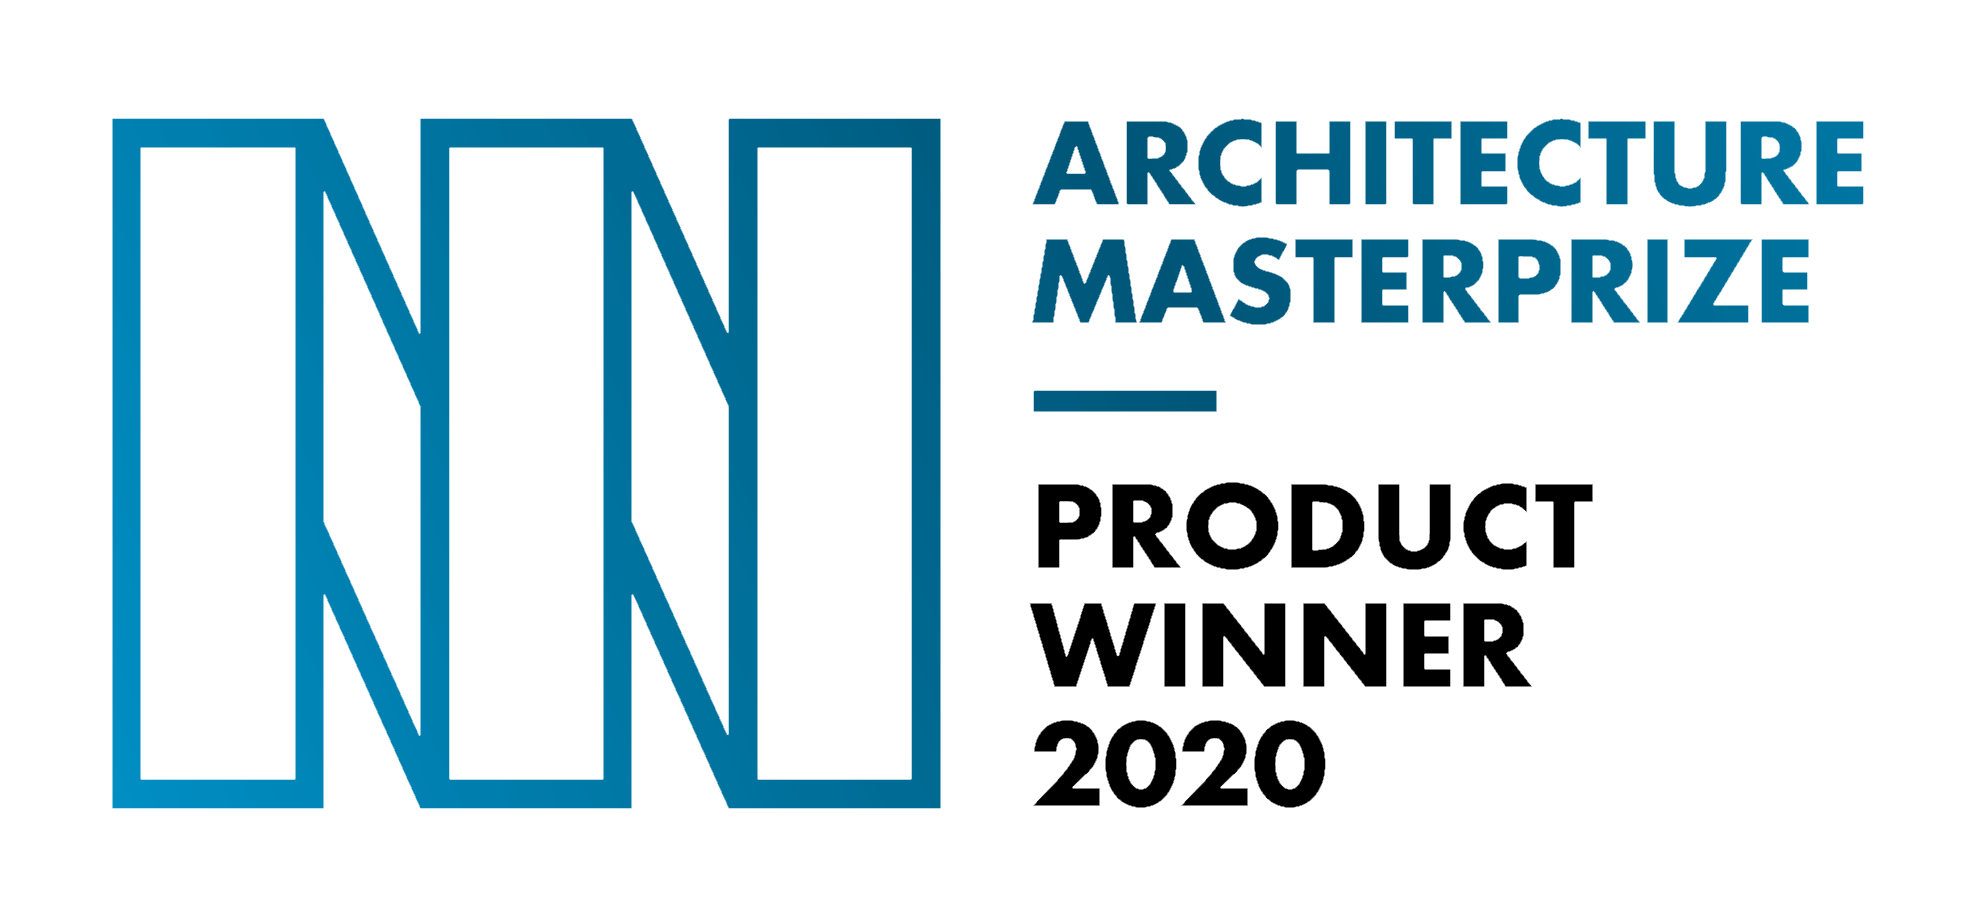 Architecture Masterprize Product Winner 2020